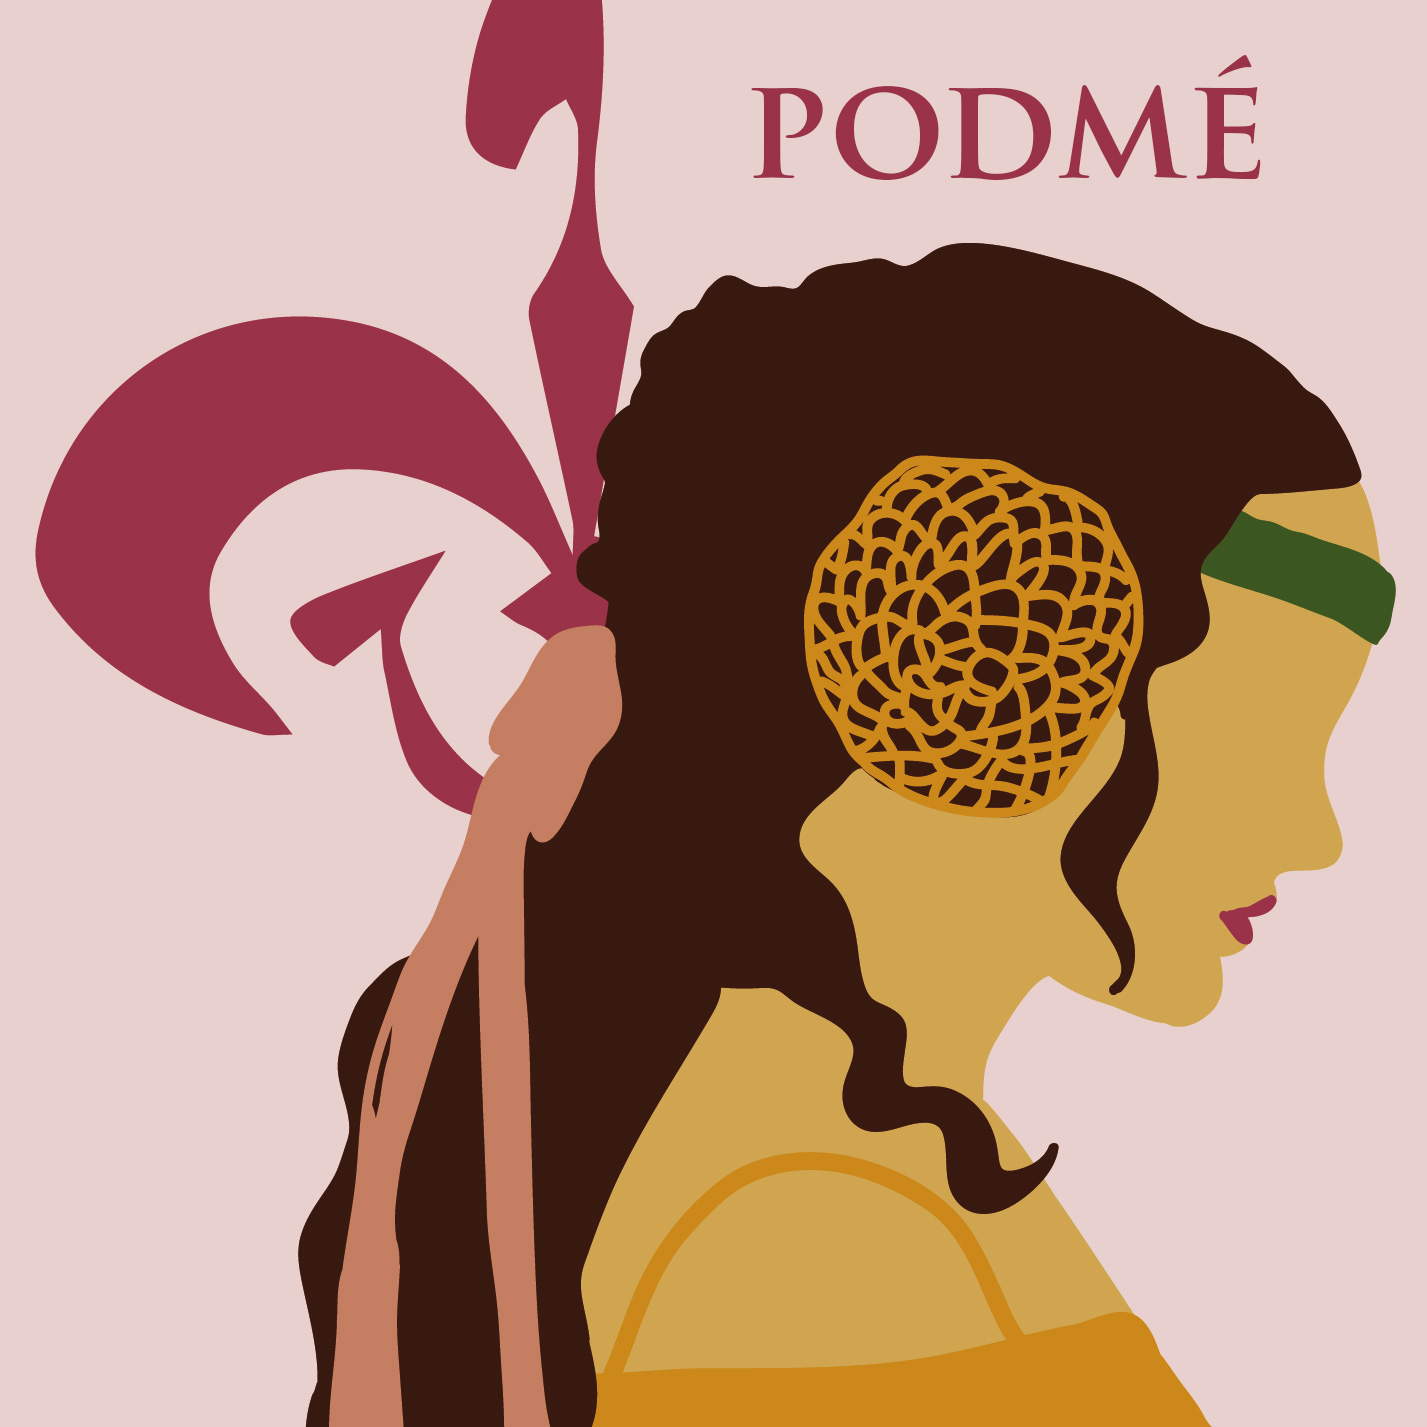 - Podmé is a monthly series podcast shining a light on the often-overlooked female heroine of the prequels, the mother of Luke and Leia, the voice of reason, and one of the smartest people in the galaxy during her time and beyond.